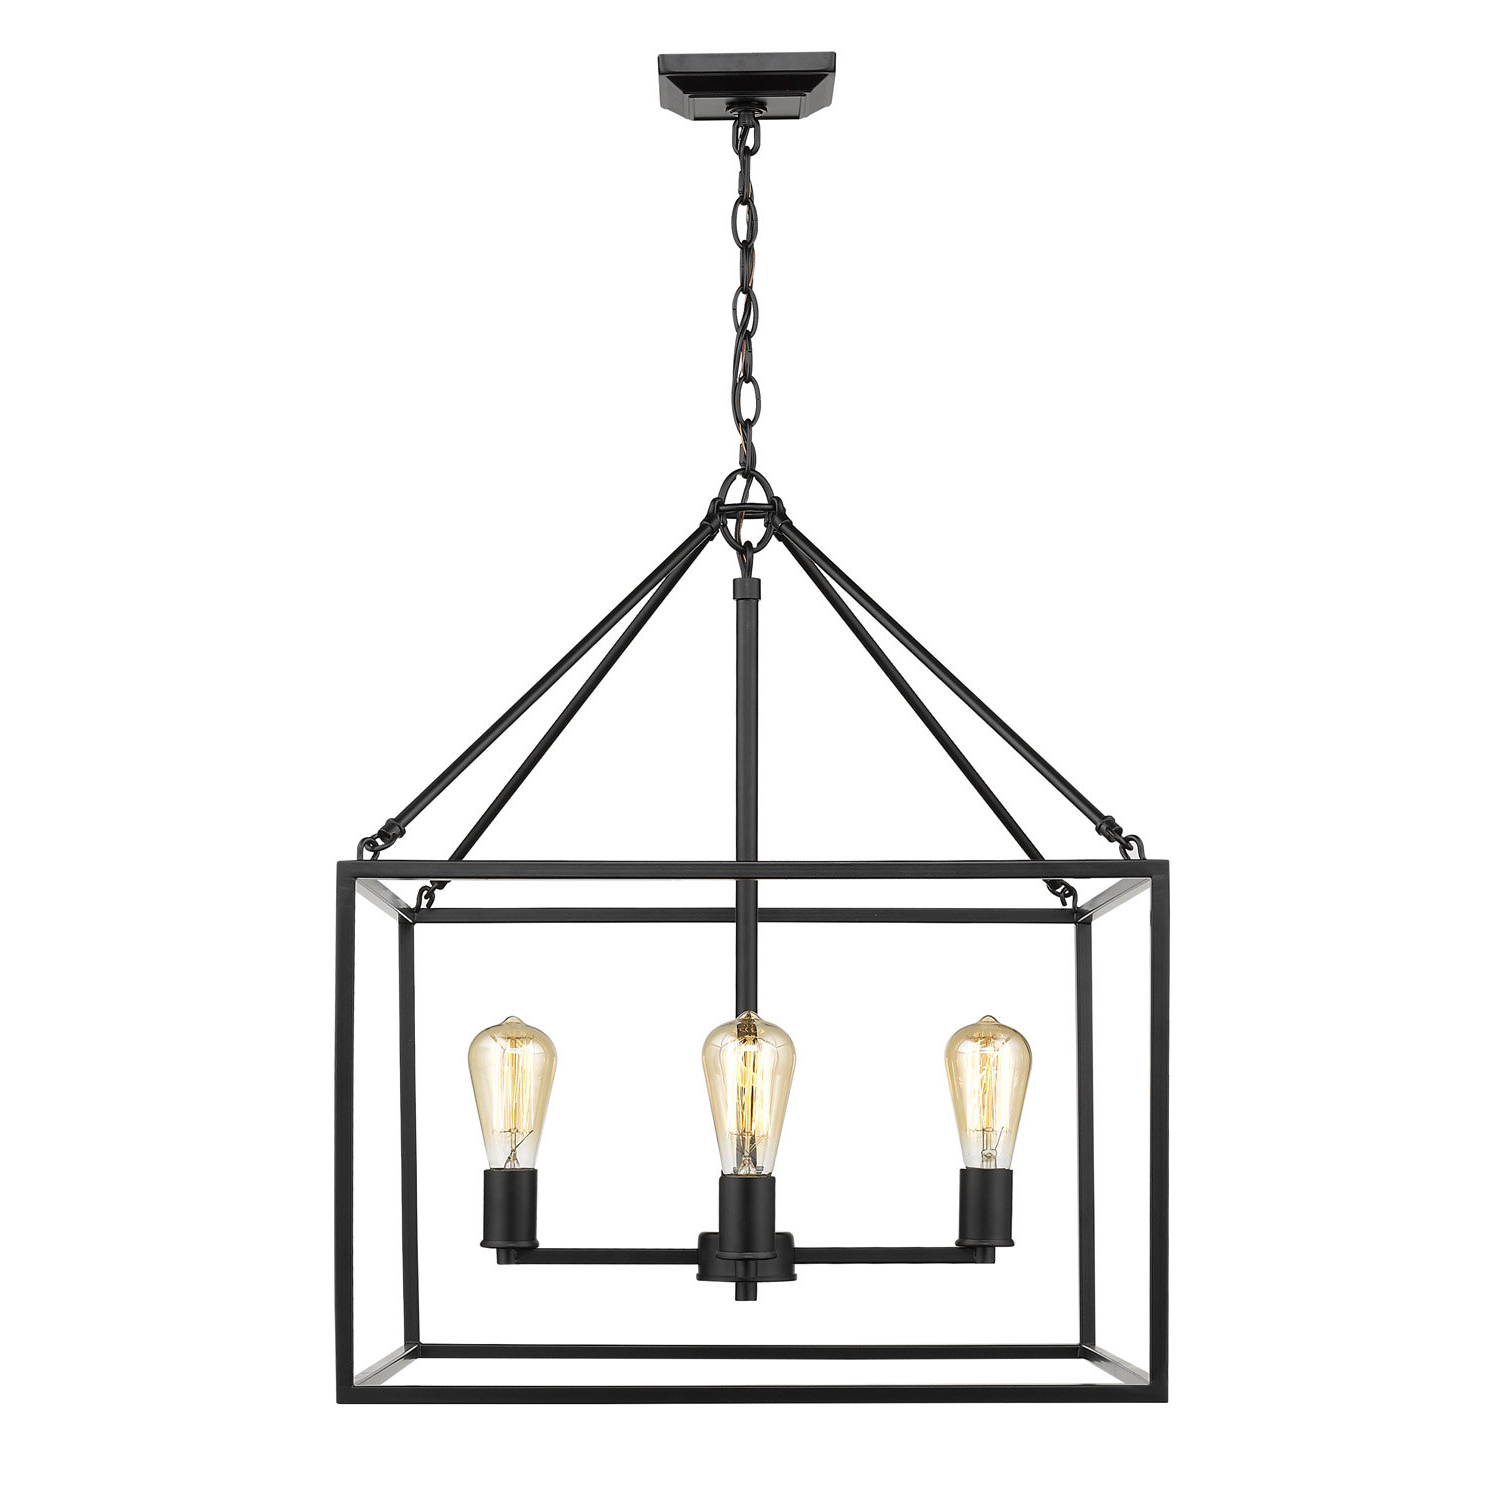 Odie 8 Light Lantern Square / Rectangle Pendants Pertaining To Most Up To Date Zabel 4 Light Lantern Square / Rectangle Pendant (View 13 of 25)